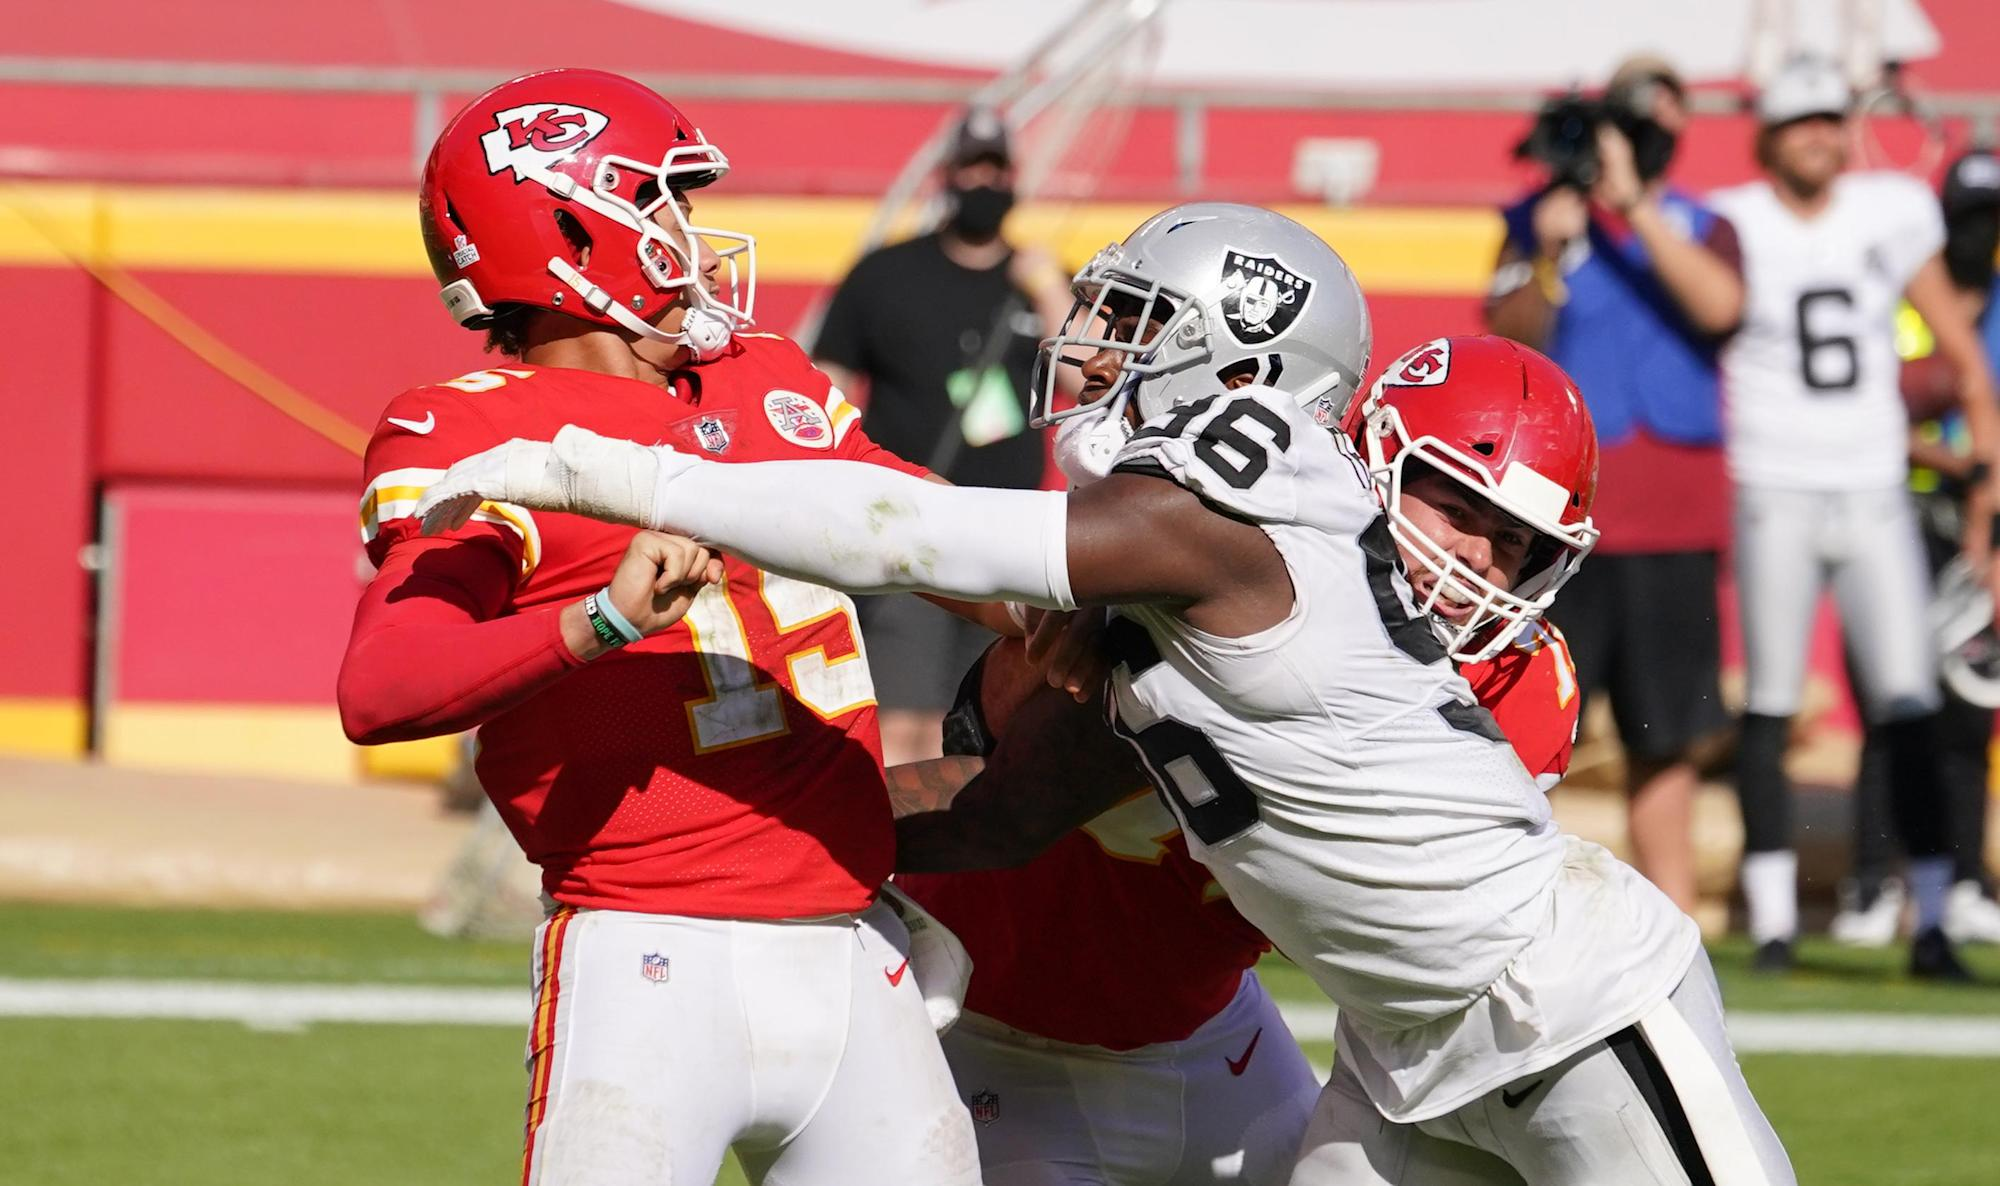 Raiders DE Clelin Ferrell named one of the worst draft mistakes since 2018